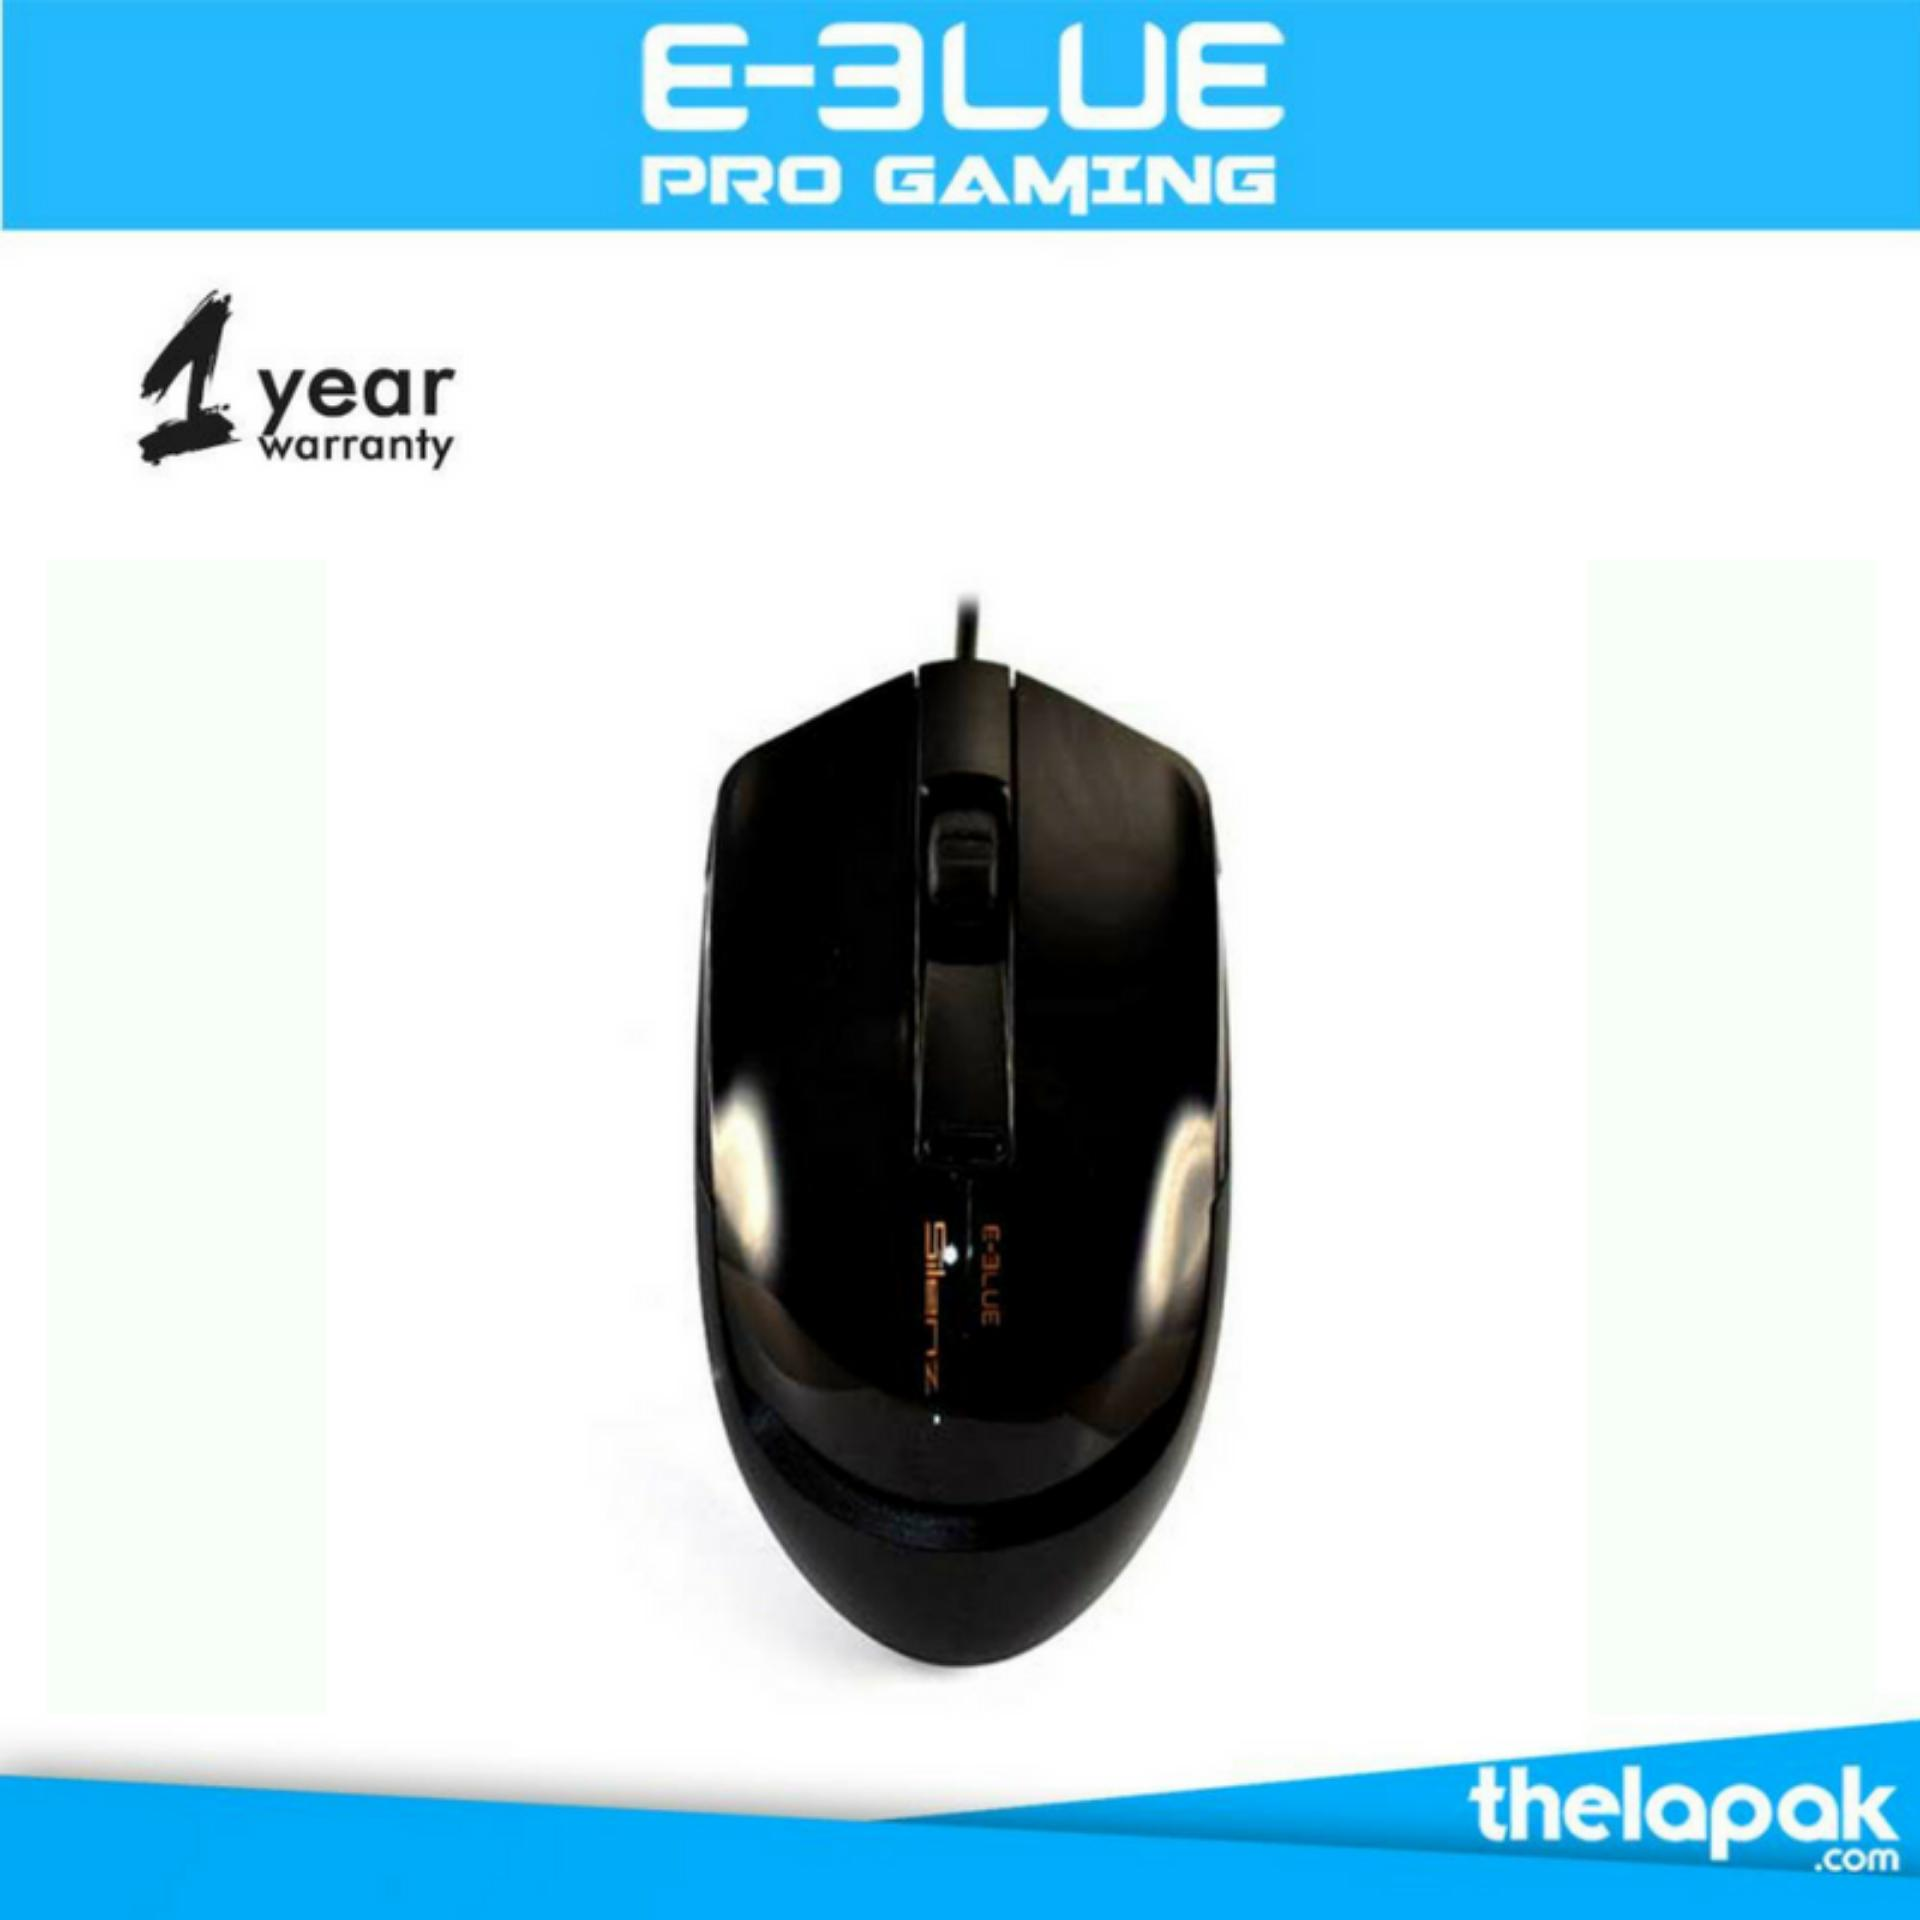 Spesifikasi E Blue Silenz Adjustable Dpi 2400 Silent Button Usb Wired Mouse Hitam Paling Bagus